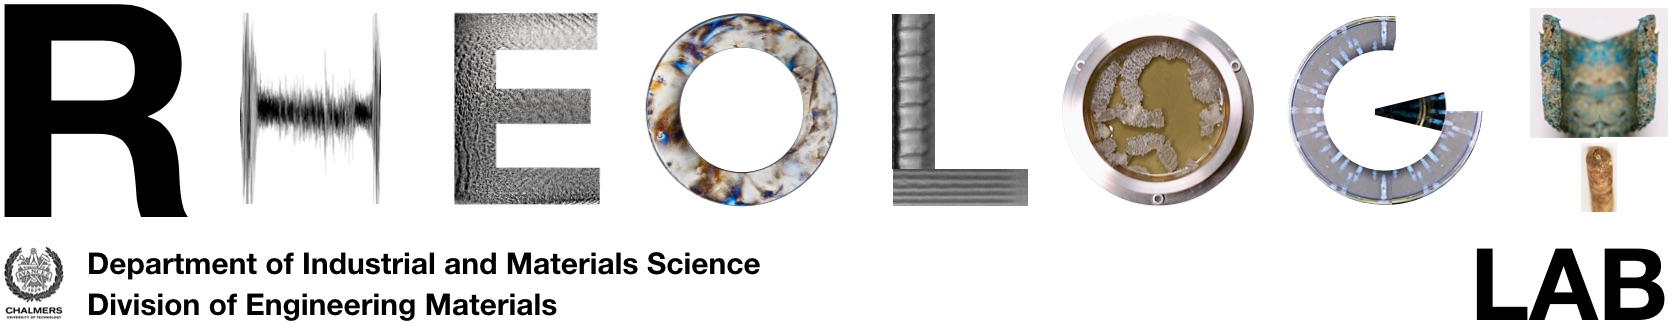 Logo with experiments.jpg